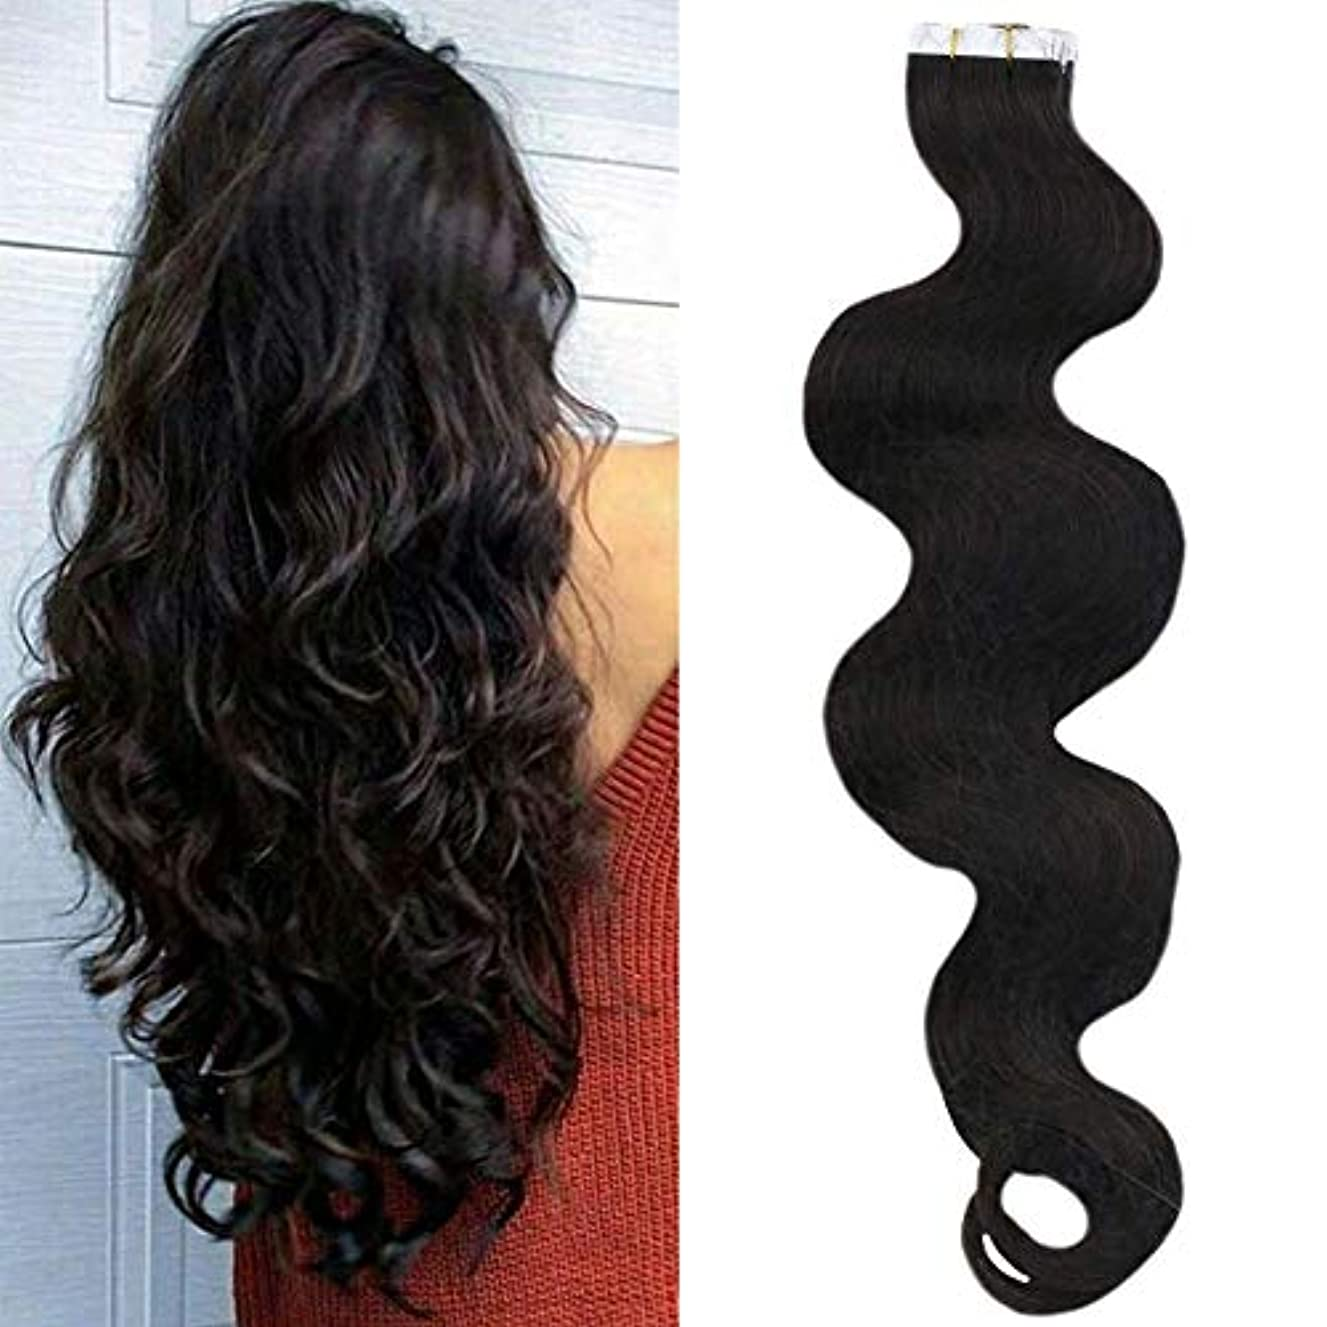 Sunny 16inch Human Hair Tape in Extensions Wavy Remy Hair Tape on Extensions #2 Darkest Brown Body Wave Extensions Curly 2.5g Per Piece 50G